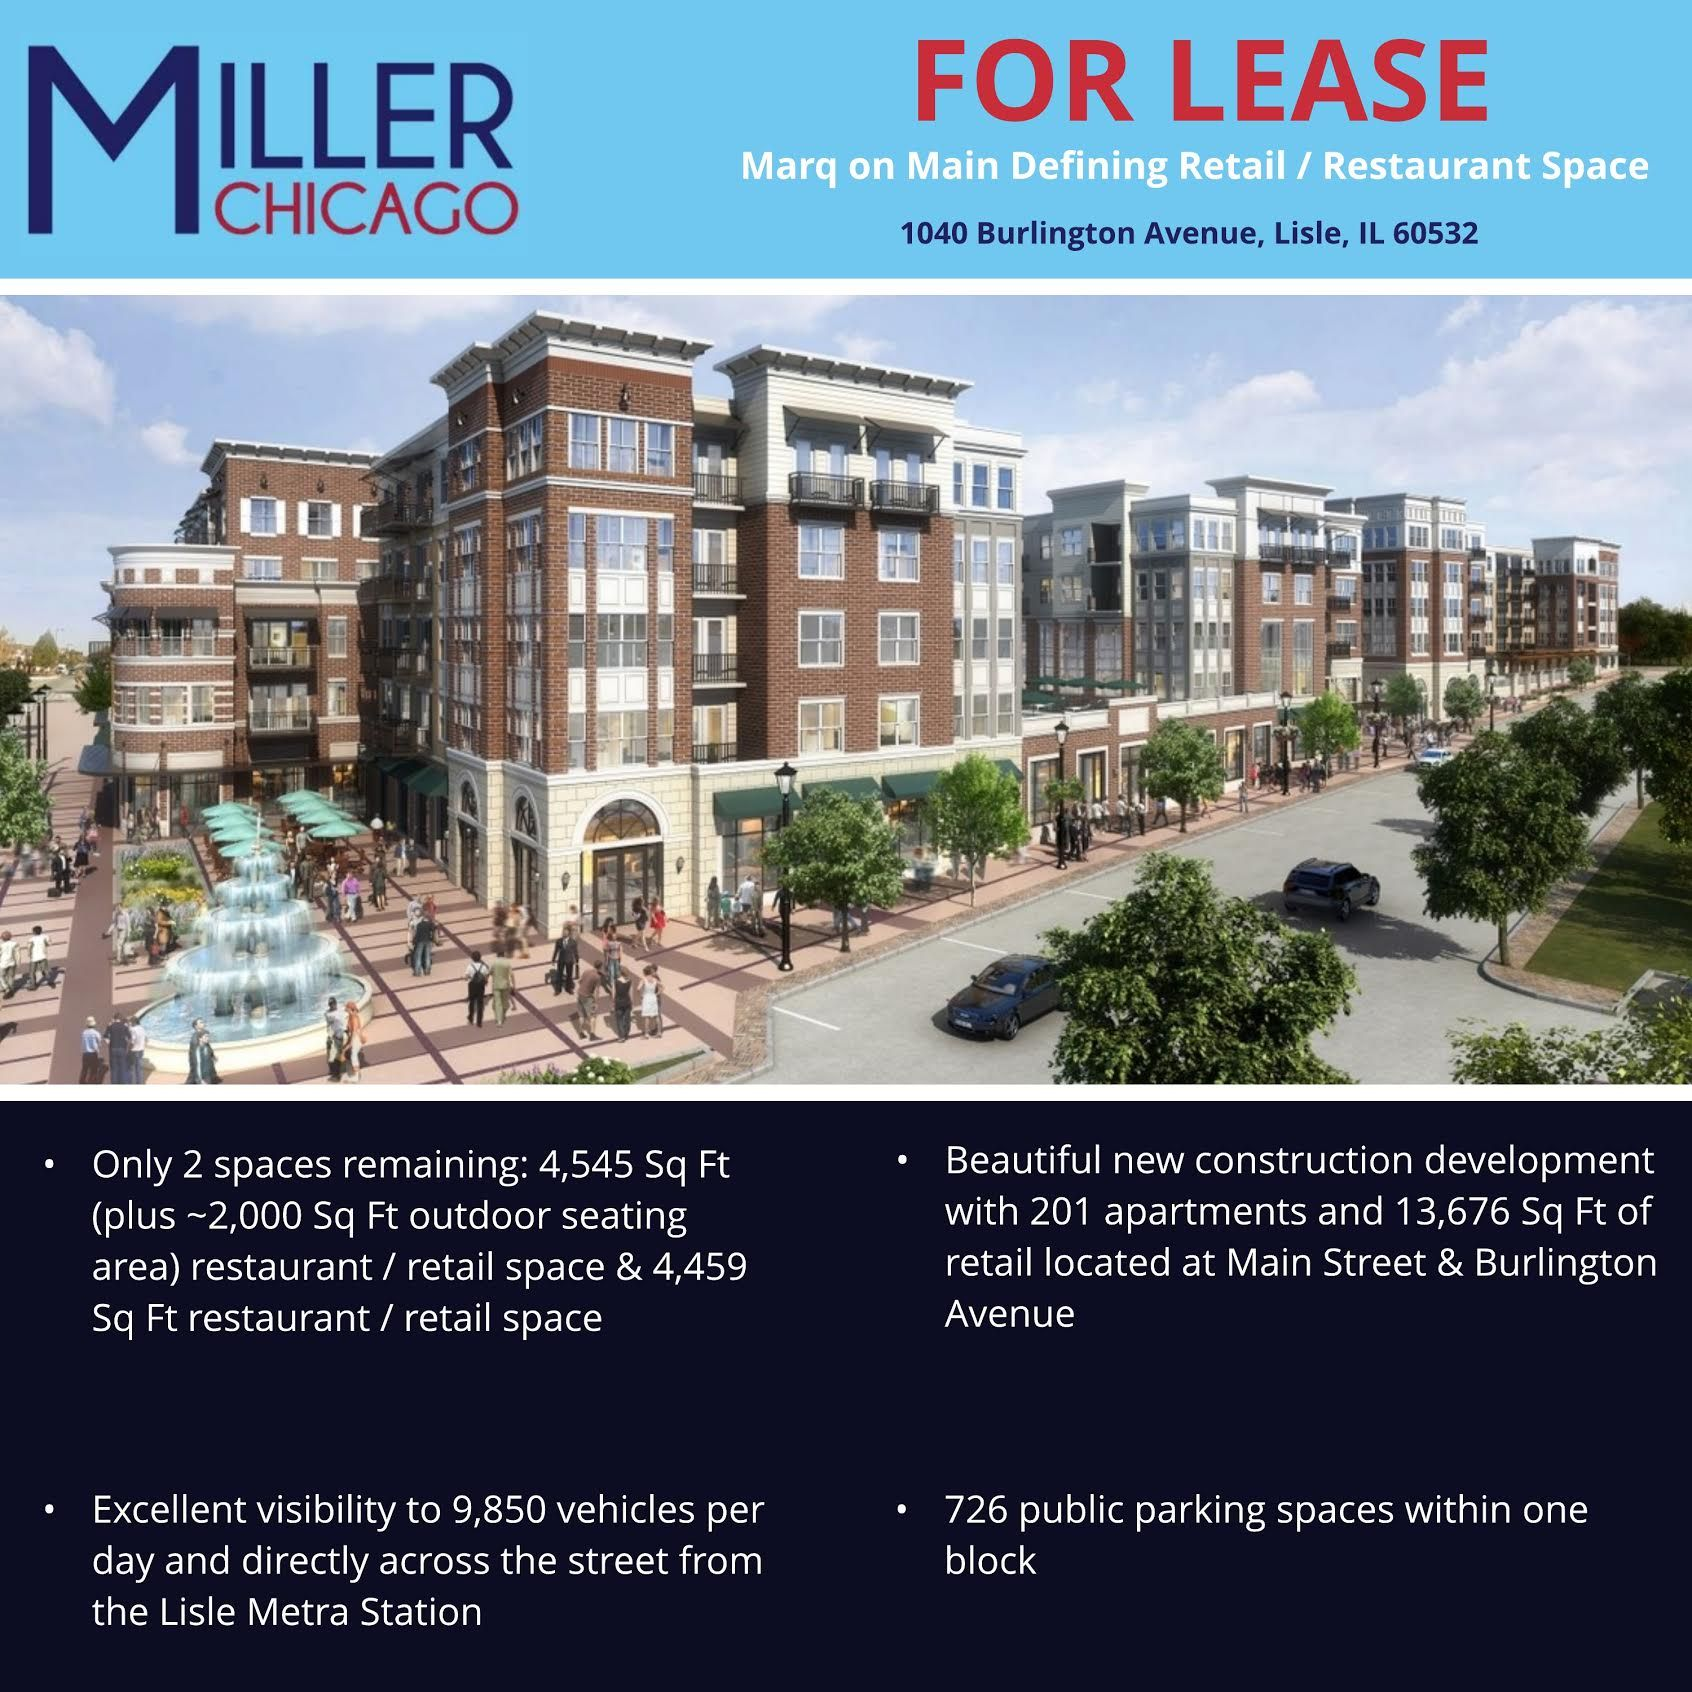 Marq On Main Defining Retail Restaurant Space For Lease In